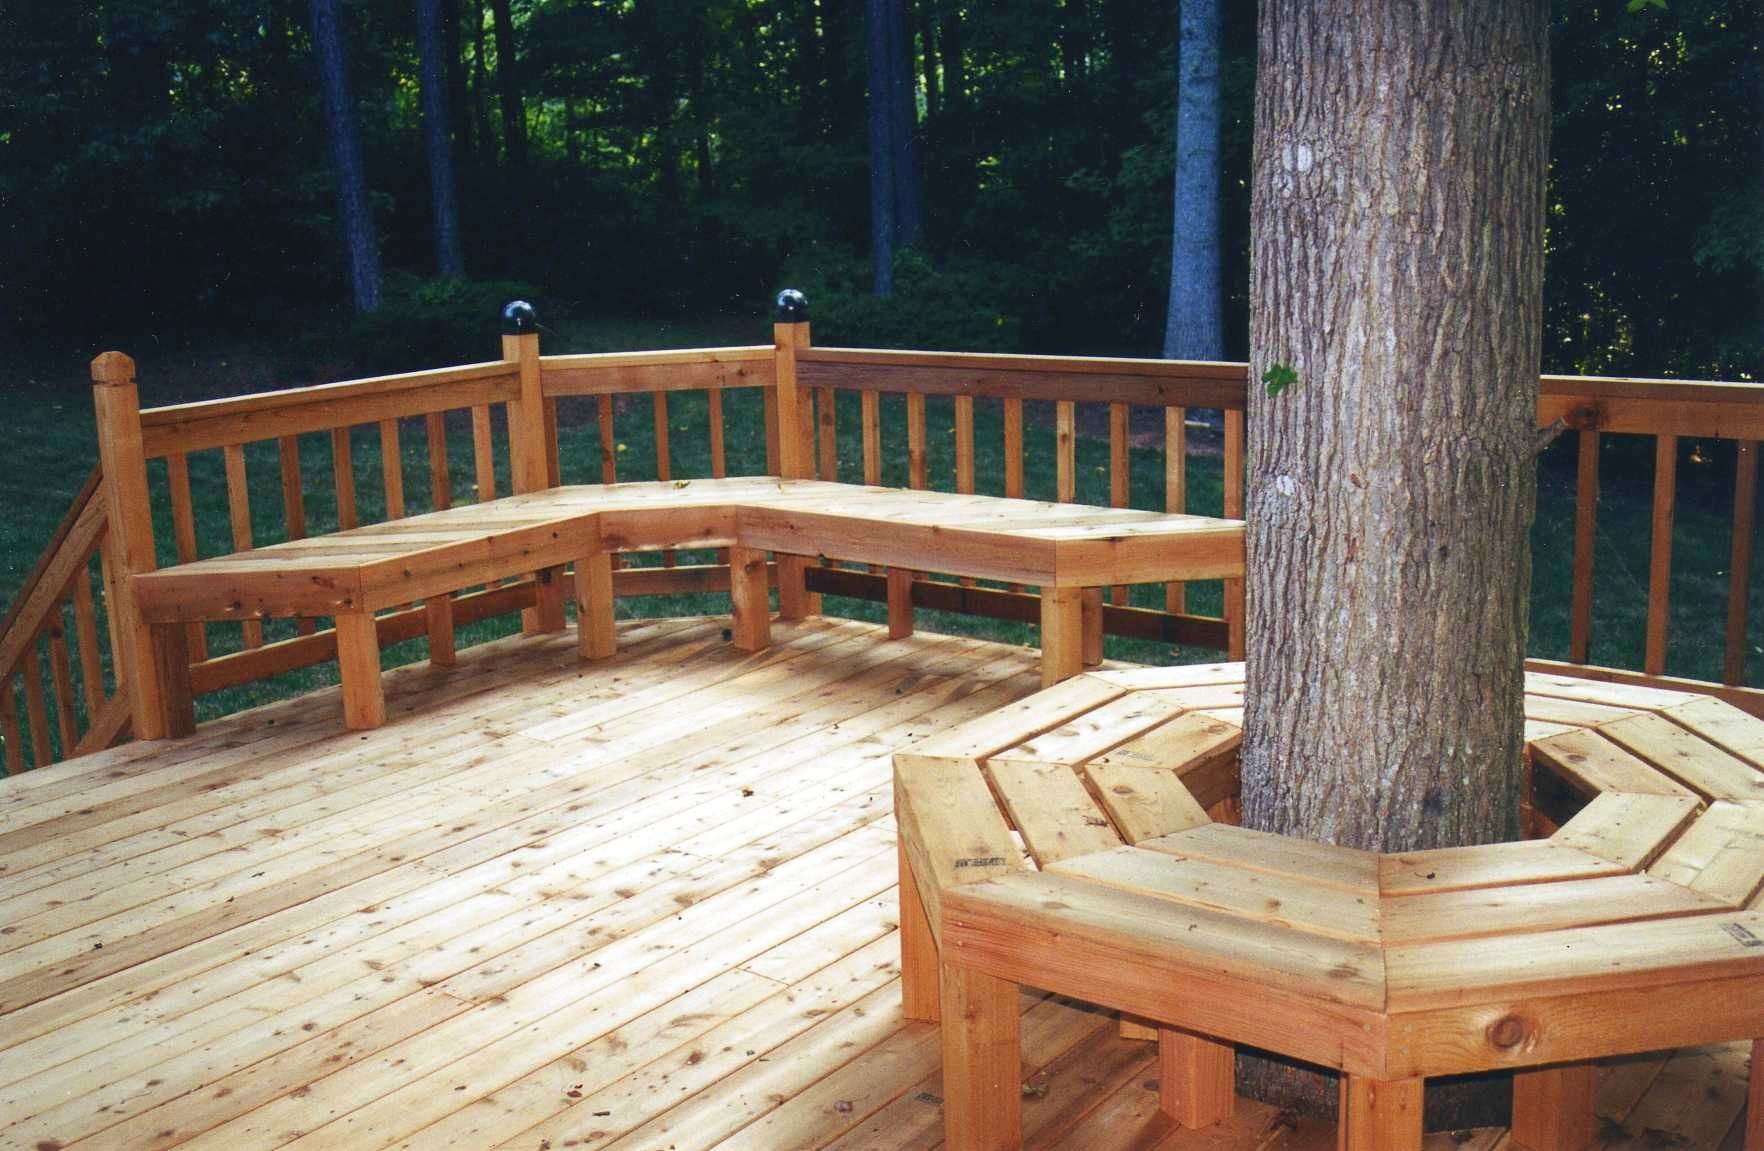 Pictures Of Sundecks Stairs And Benches: Very Nice Deck And Benches Built Around A Tree.